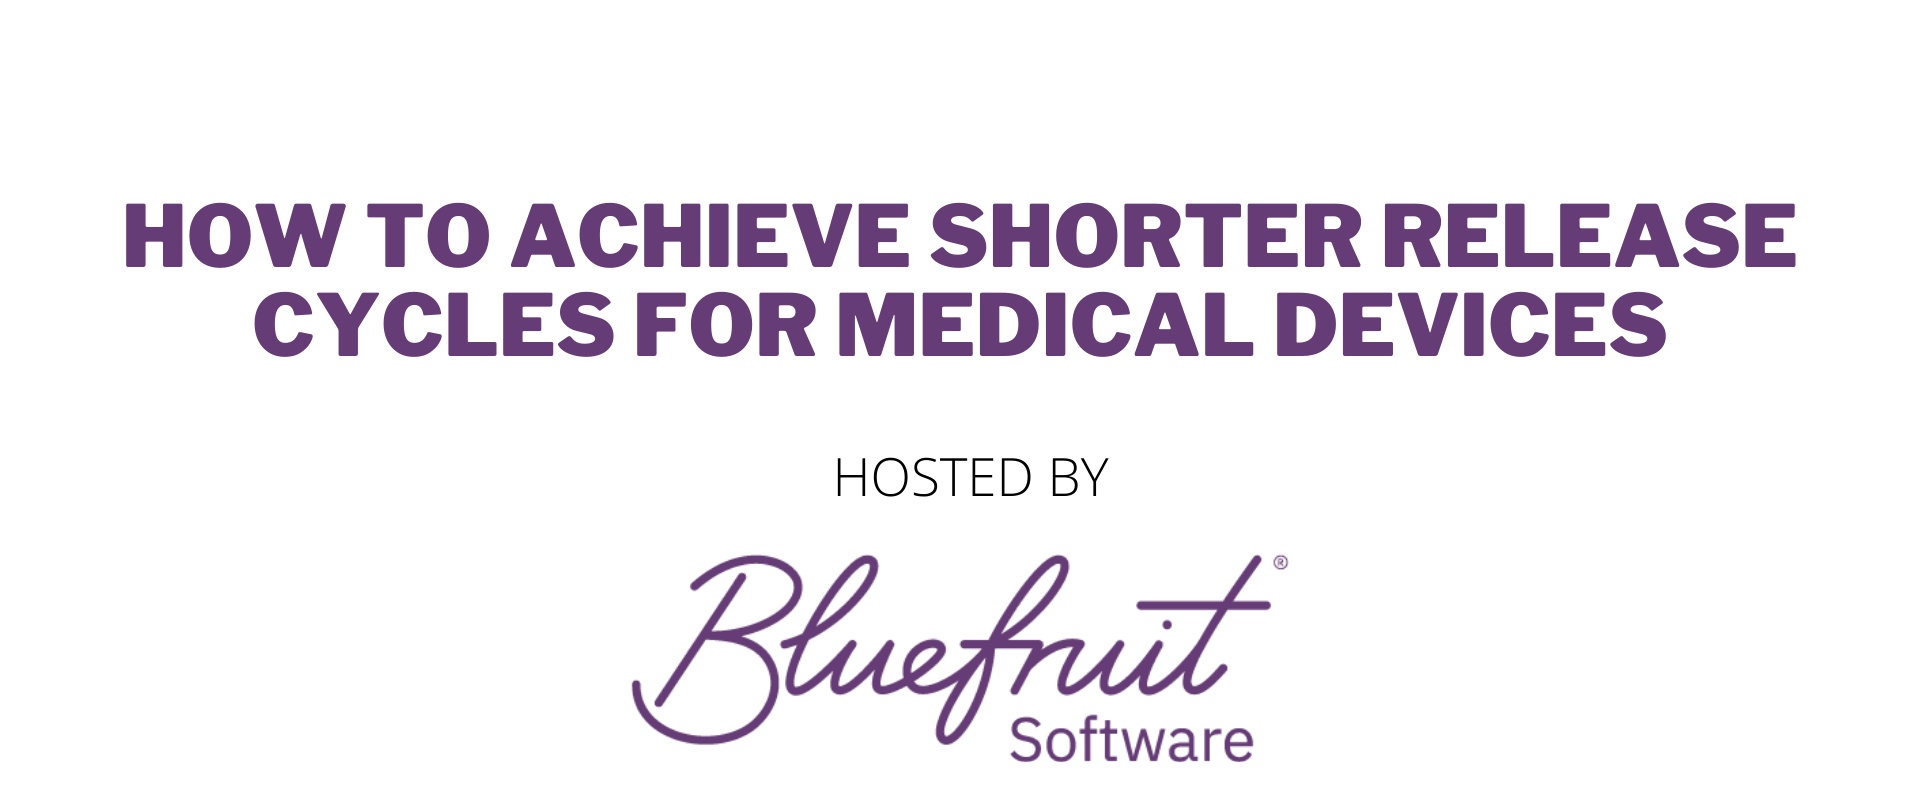 Bluefruit Software Webinar